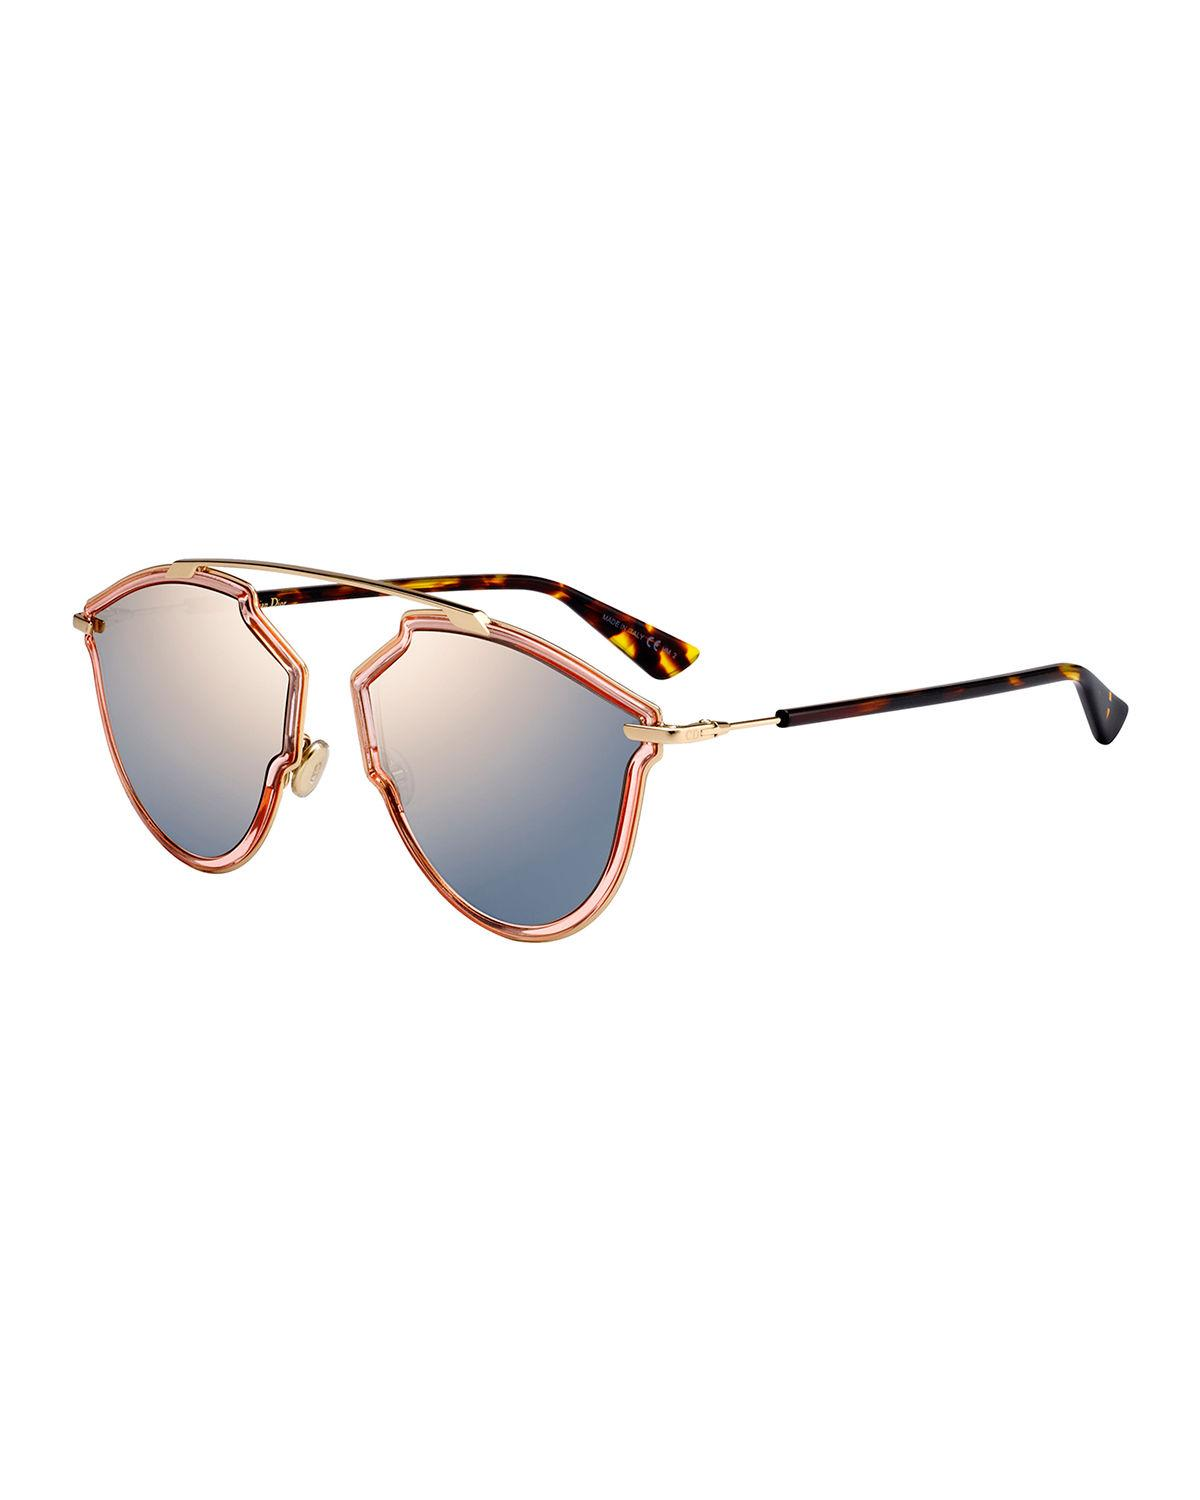 9866193cf855 DIOR. Women s Sorealrise Mirrored Brow Bar Round Sunglasses